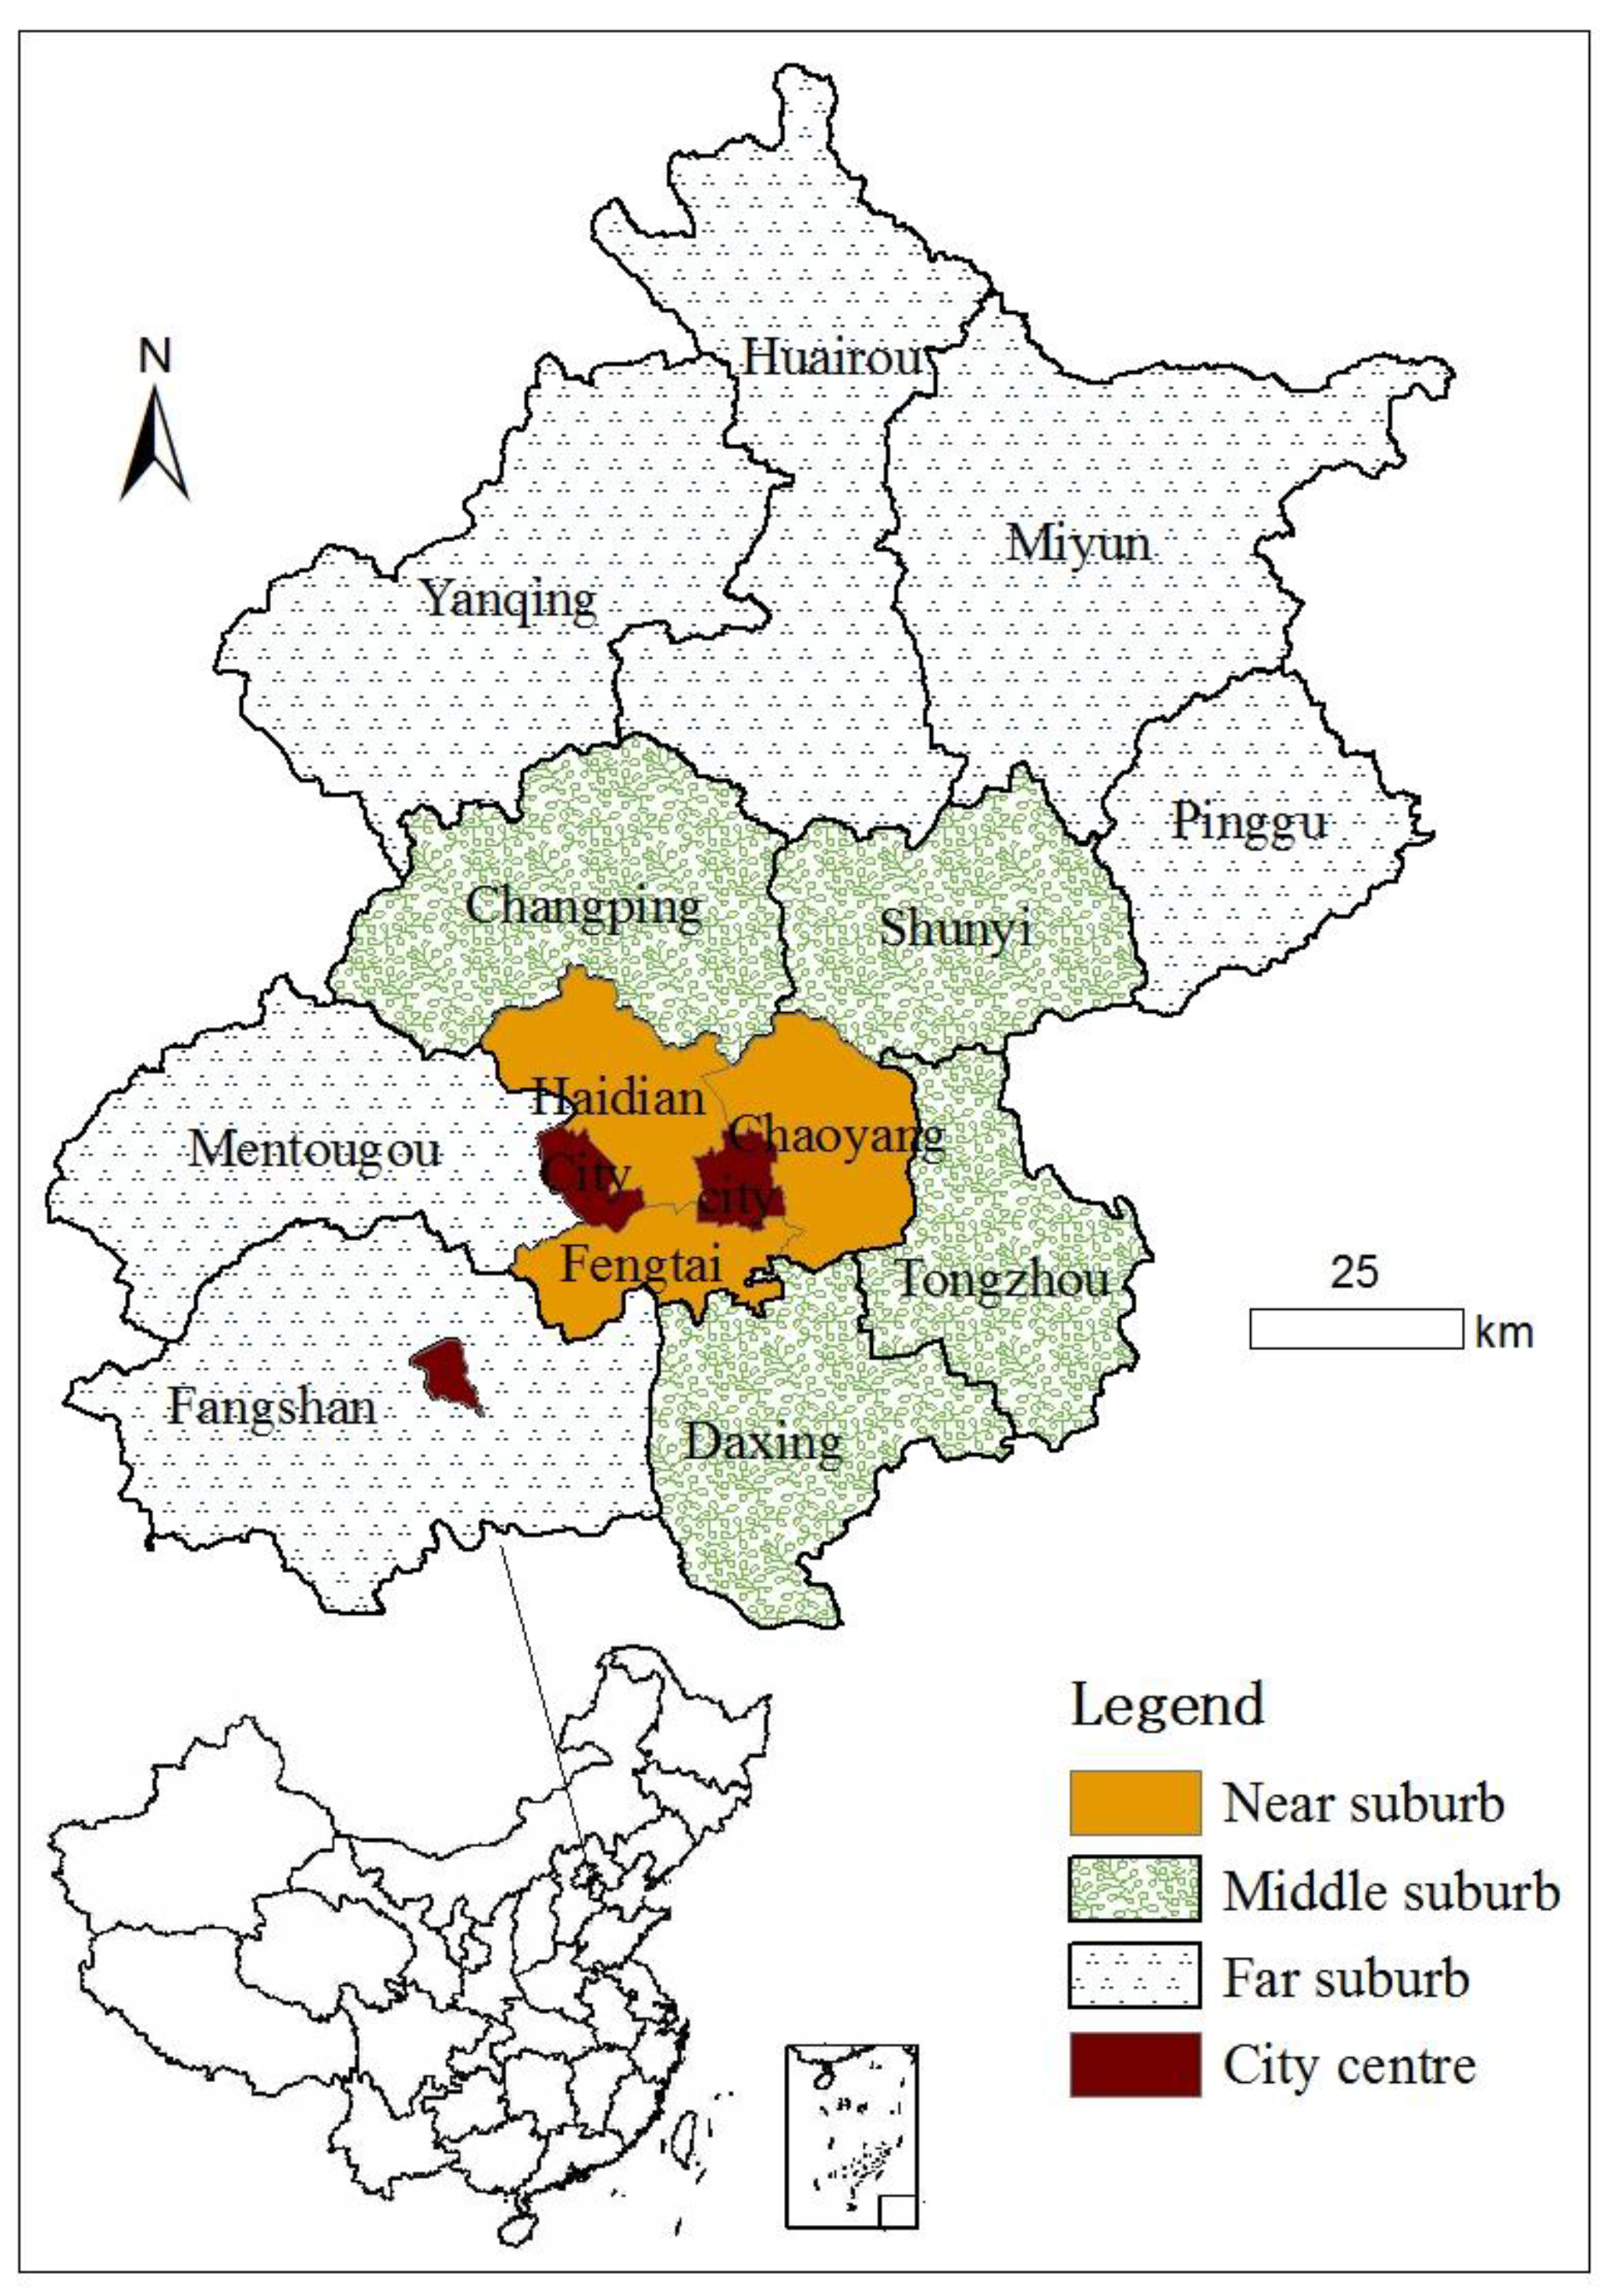 The Transition of Farmland Production Functions in Metropolitan Areas in China